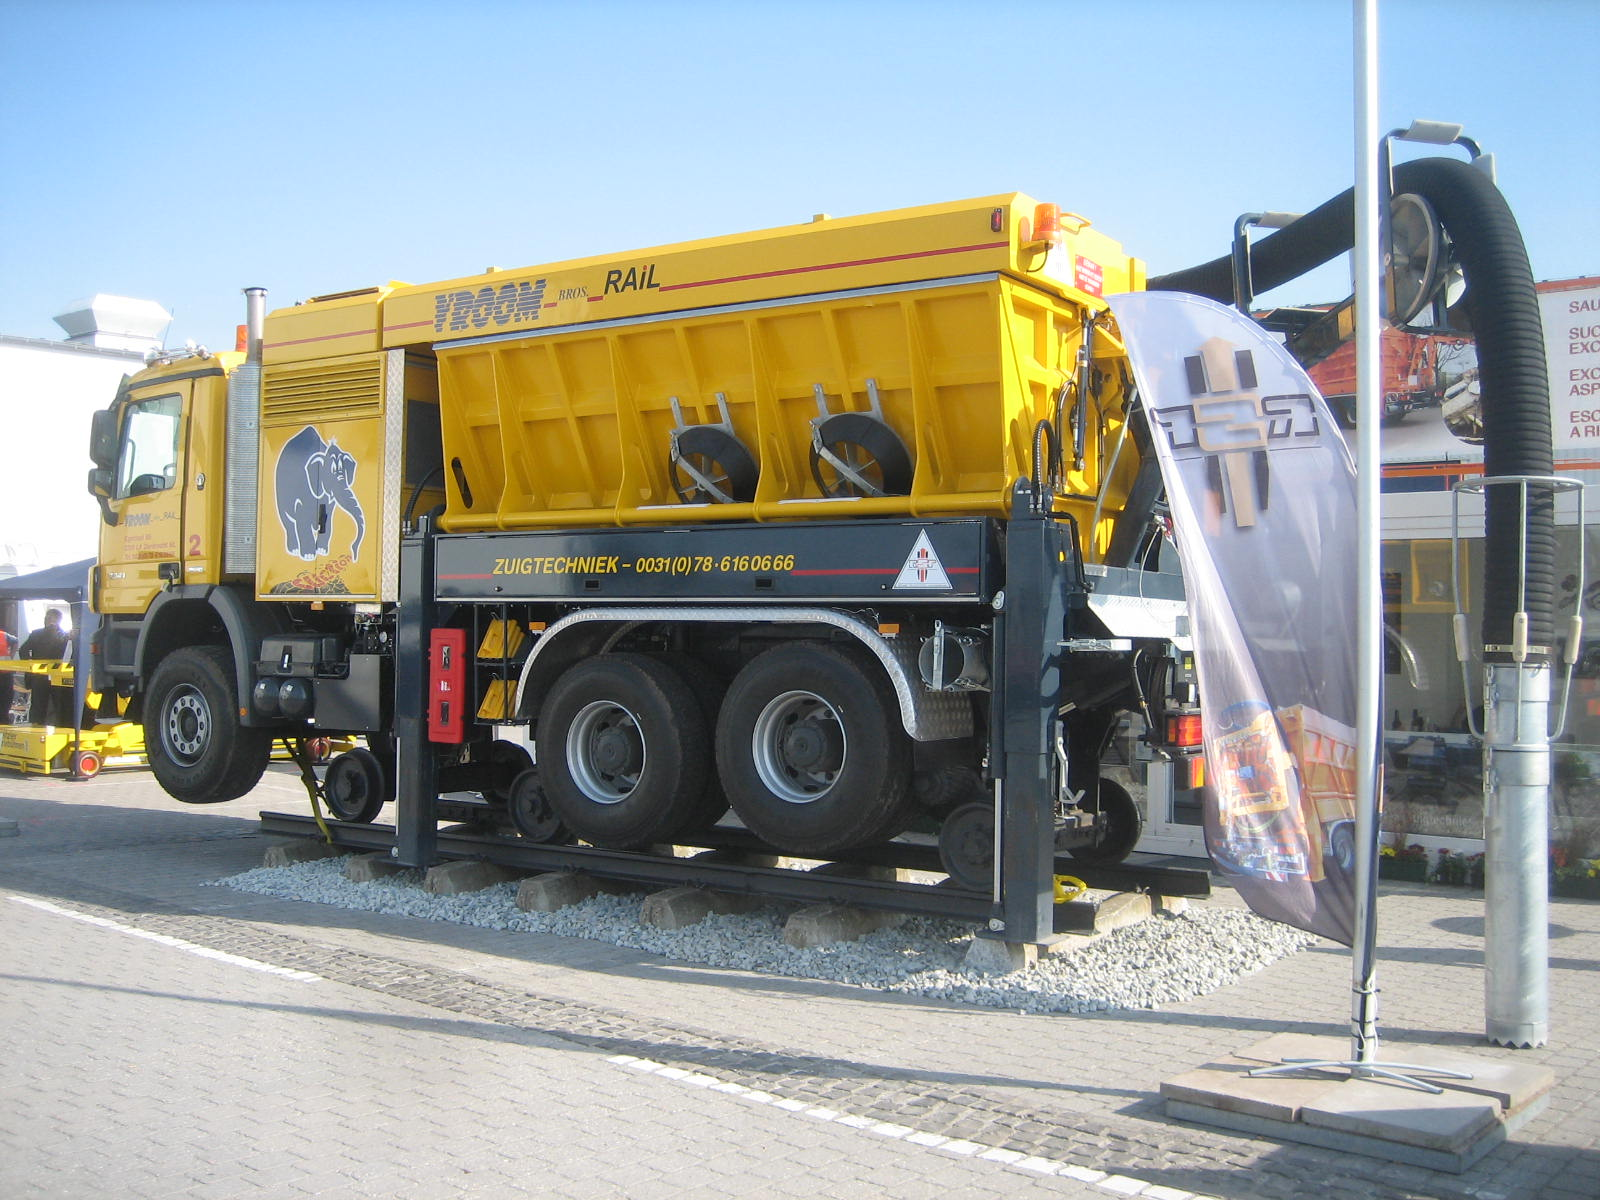 RSP-Staubsauger#bb100924 Innotrans 068  MB  Actros 3341.jpg